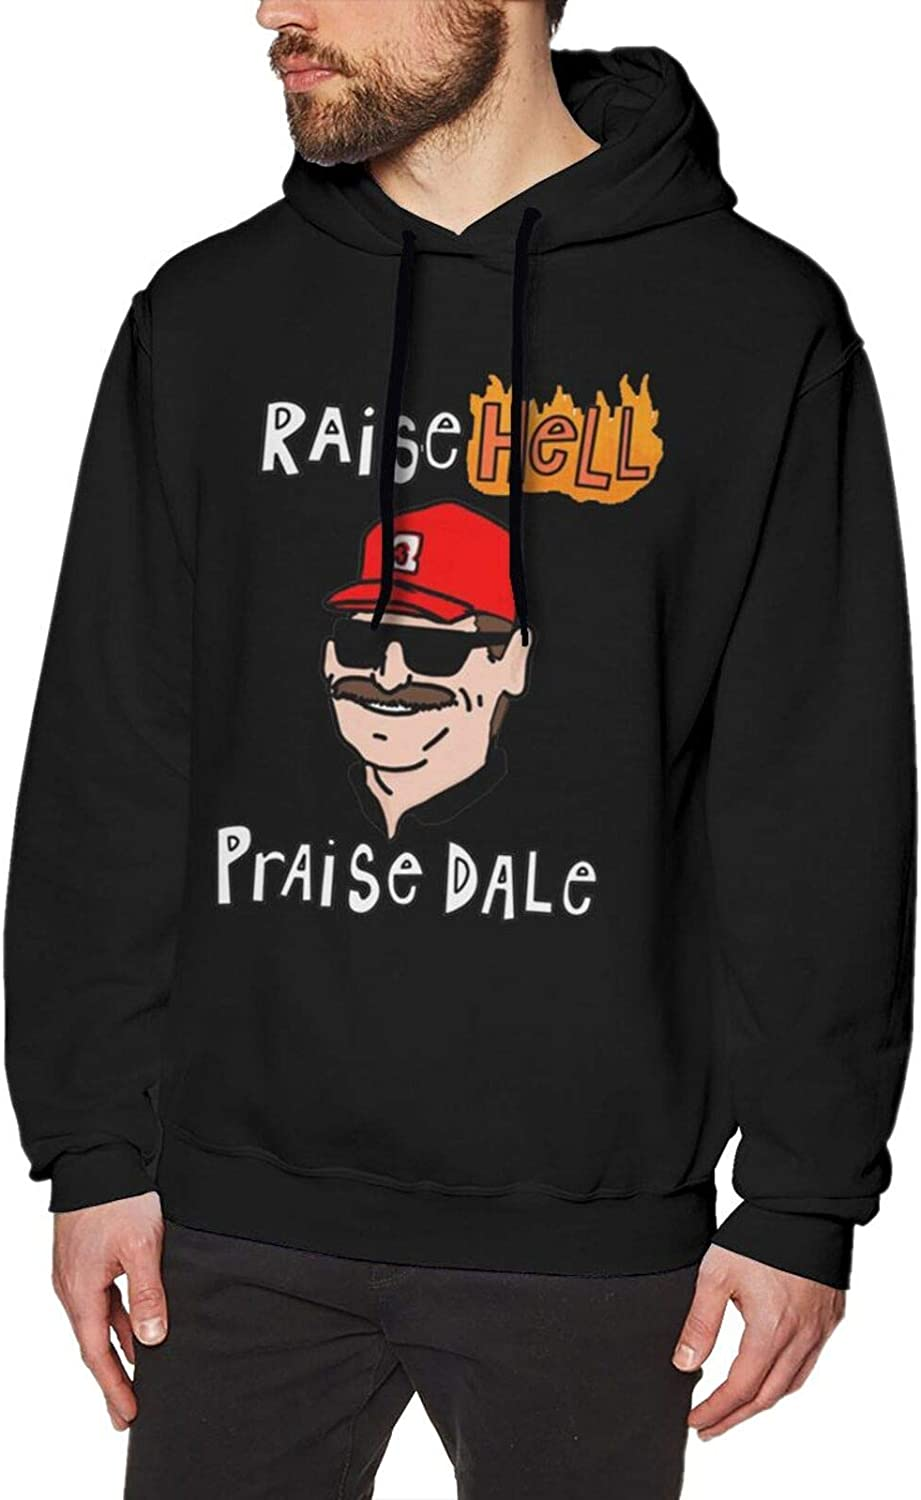 RUIHGK Raise Hell Praise Dale Trucks Hoodie 70% OFF Outlet Sleeve Long Pullover 1 year warranty